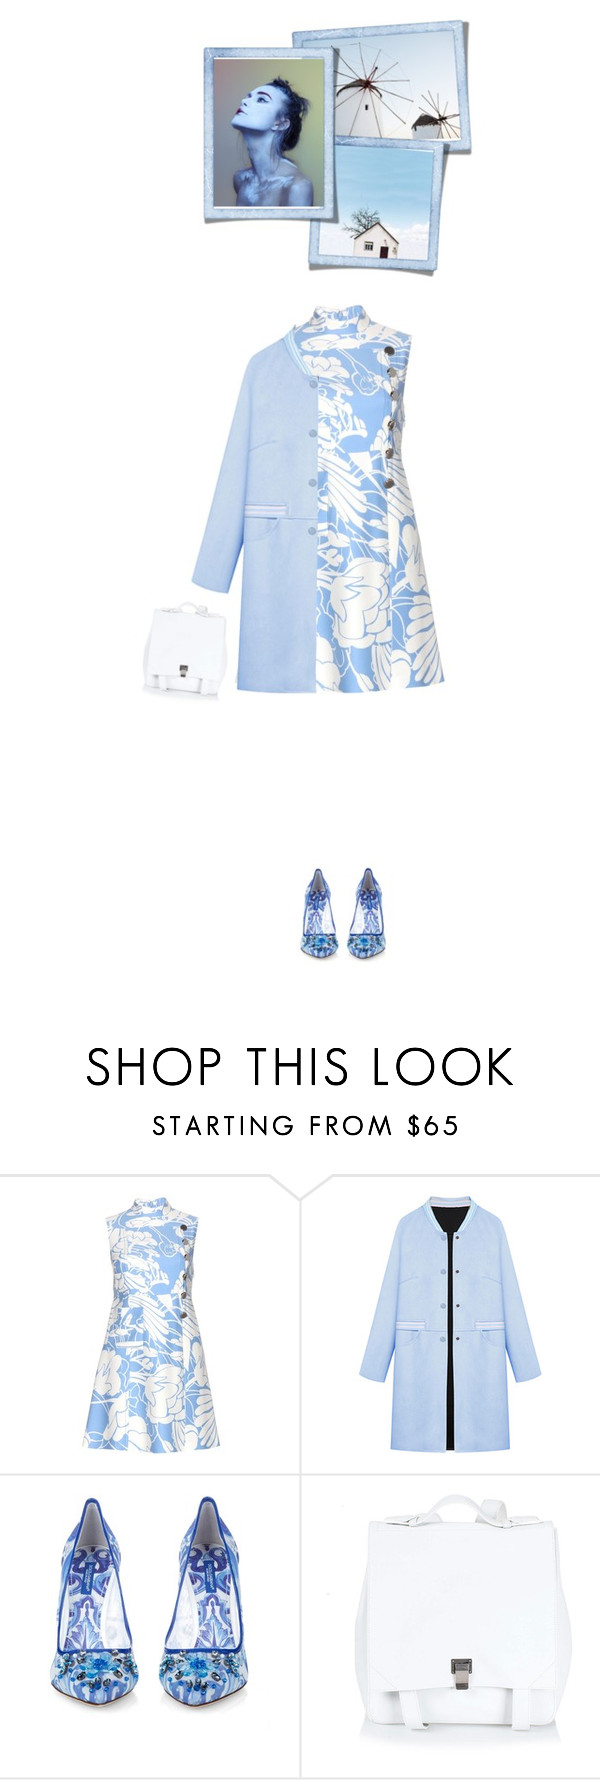 """""""Blue Suedette Striped Collar And Pocket Longline Trench Coat"""" by bodangela ❤ liked on Polyvore featuring Miu Miu, WithChic, Dolce&Gabbana, Proenza Schouler, women's clothing, women's fashion, women, female, woman and misses"""